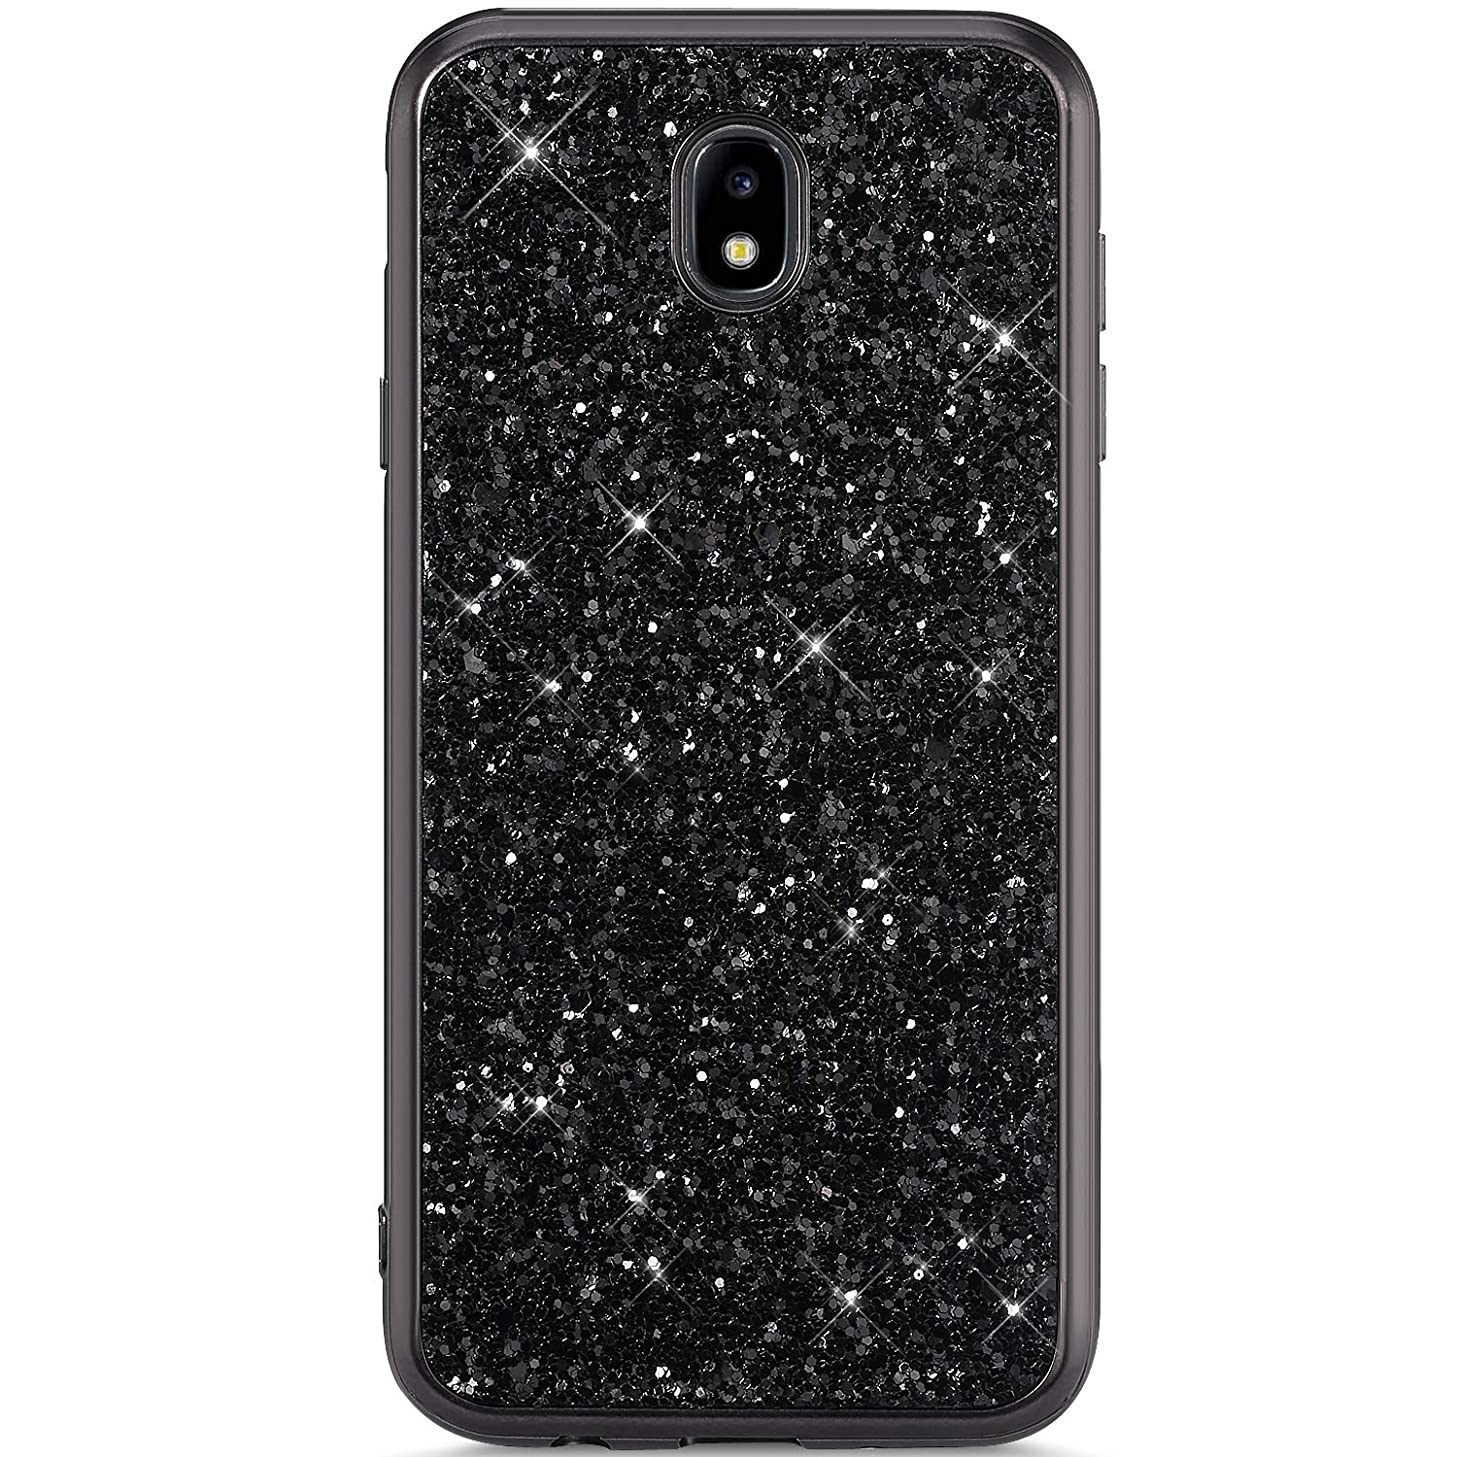 IKASEFU Compatible with Samsung Galaxy J7 Pro 2017 Case Flash Back Shockproof Luxury Glitter Sparkly Bling Cute Shiny PC+Soft TPU silicone Thin Bumper Protective plating Cover,black